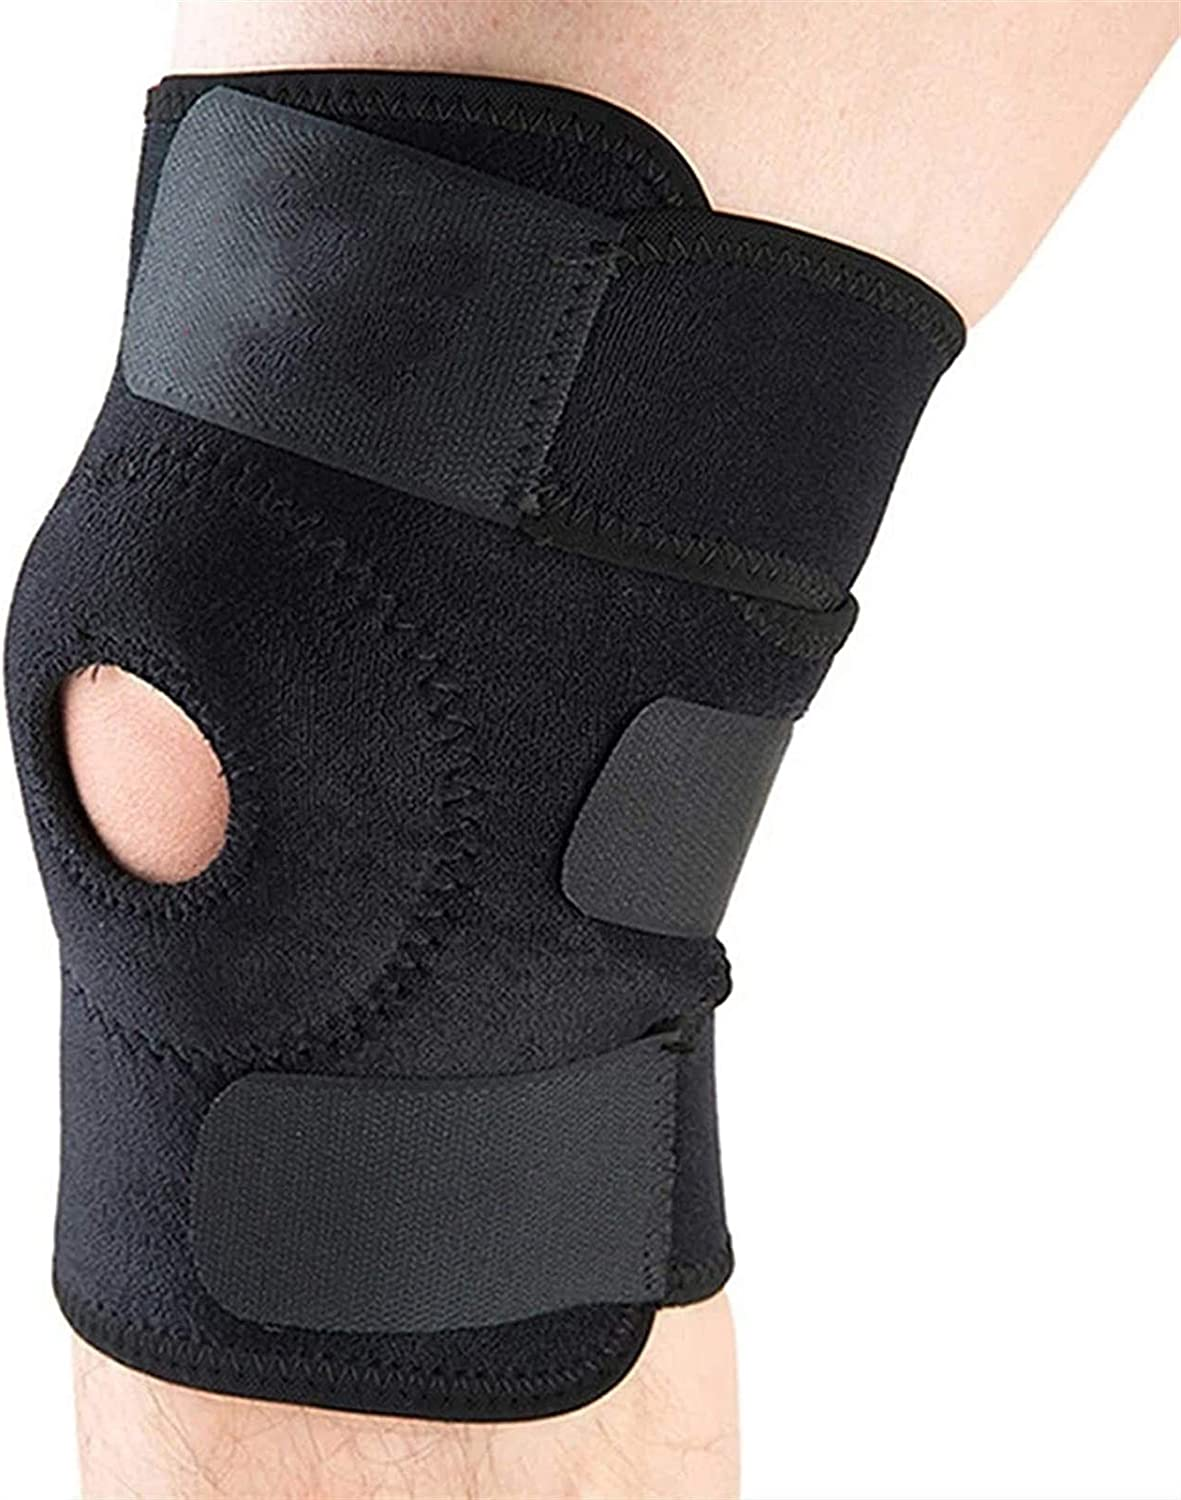 Professional Free Shipping Cheap Bargain Gift Knee Brace Thick Animer and price revision Sponge Kne Kneeling Anti-collision